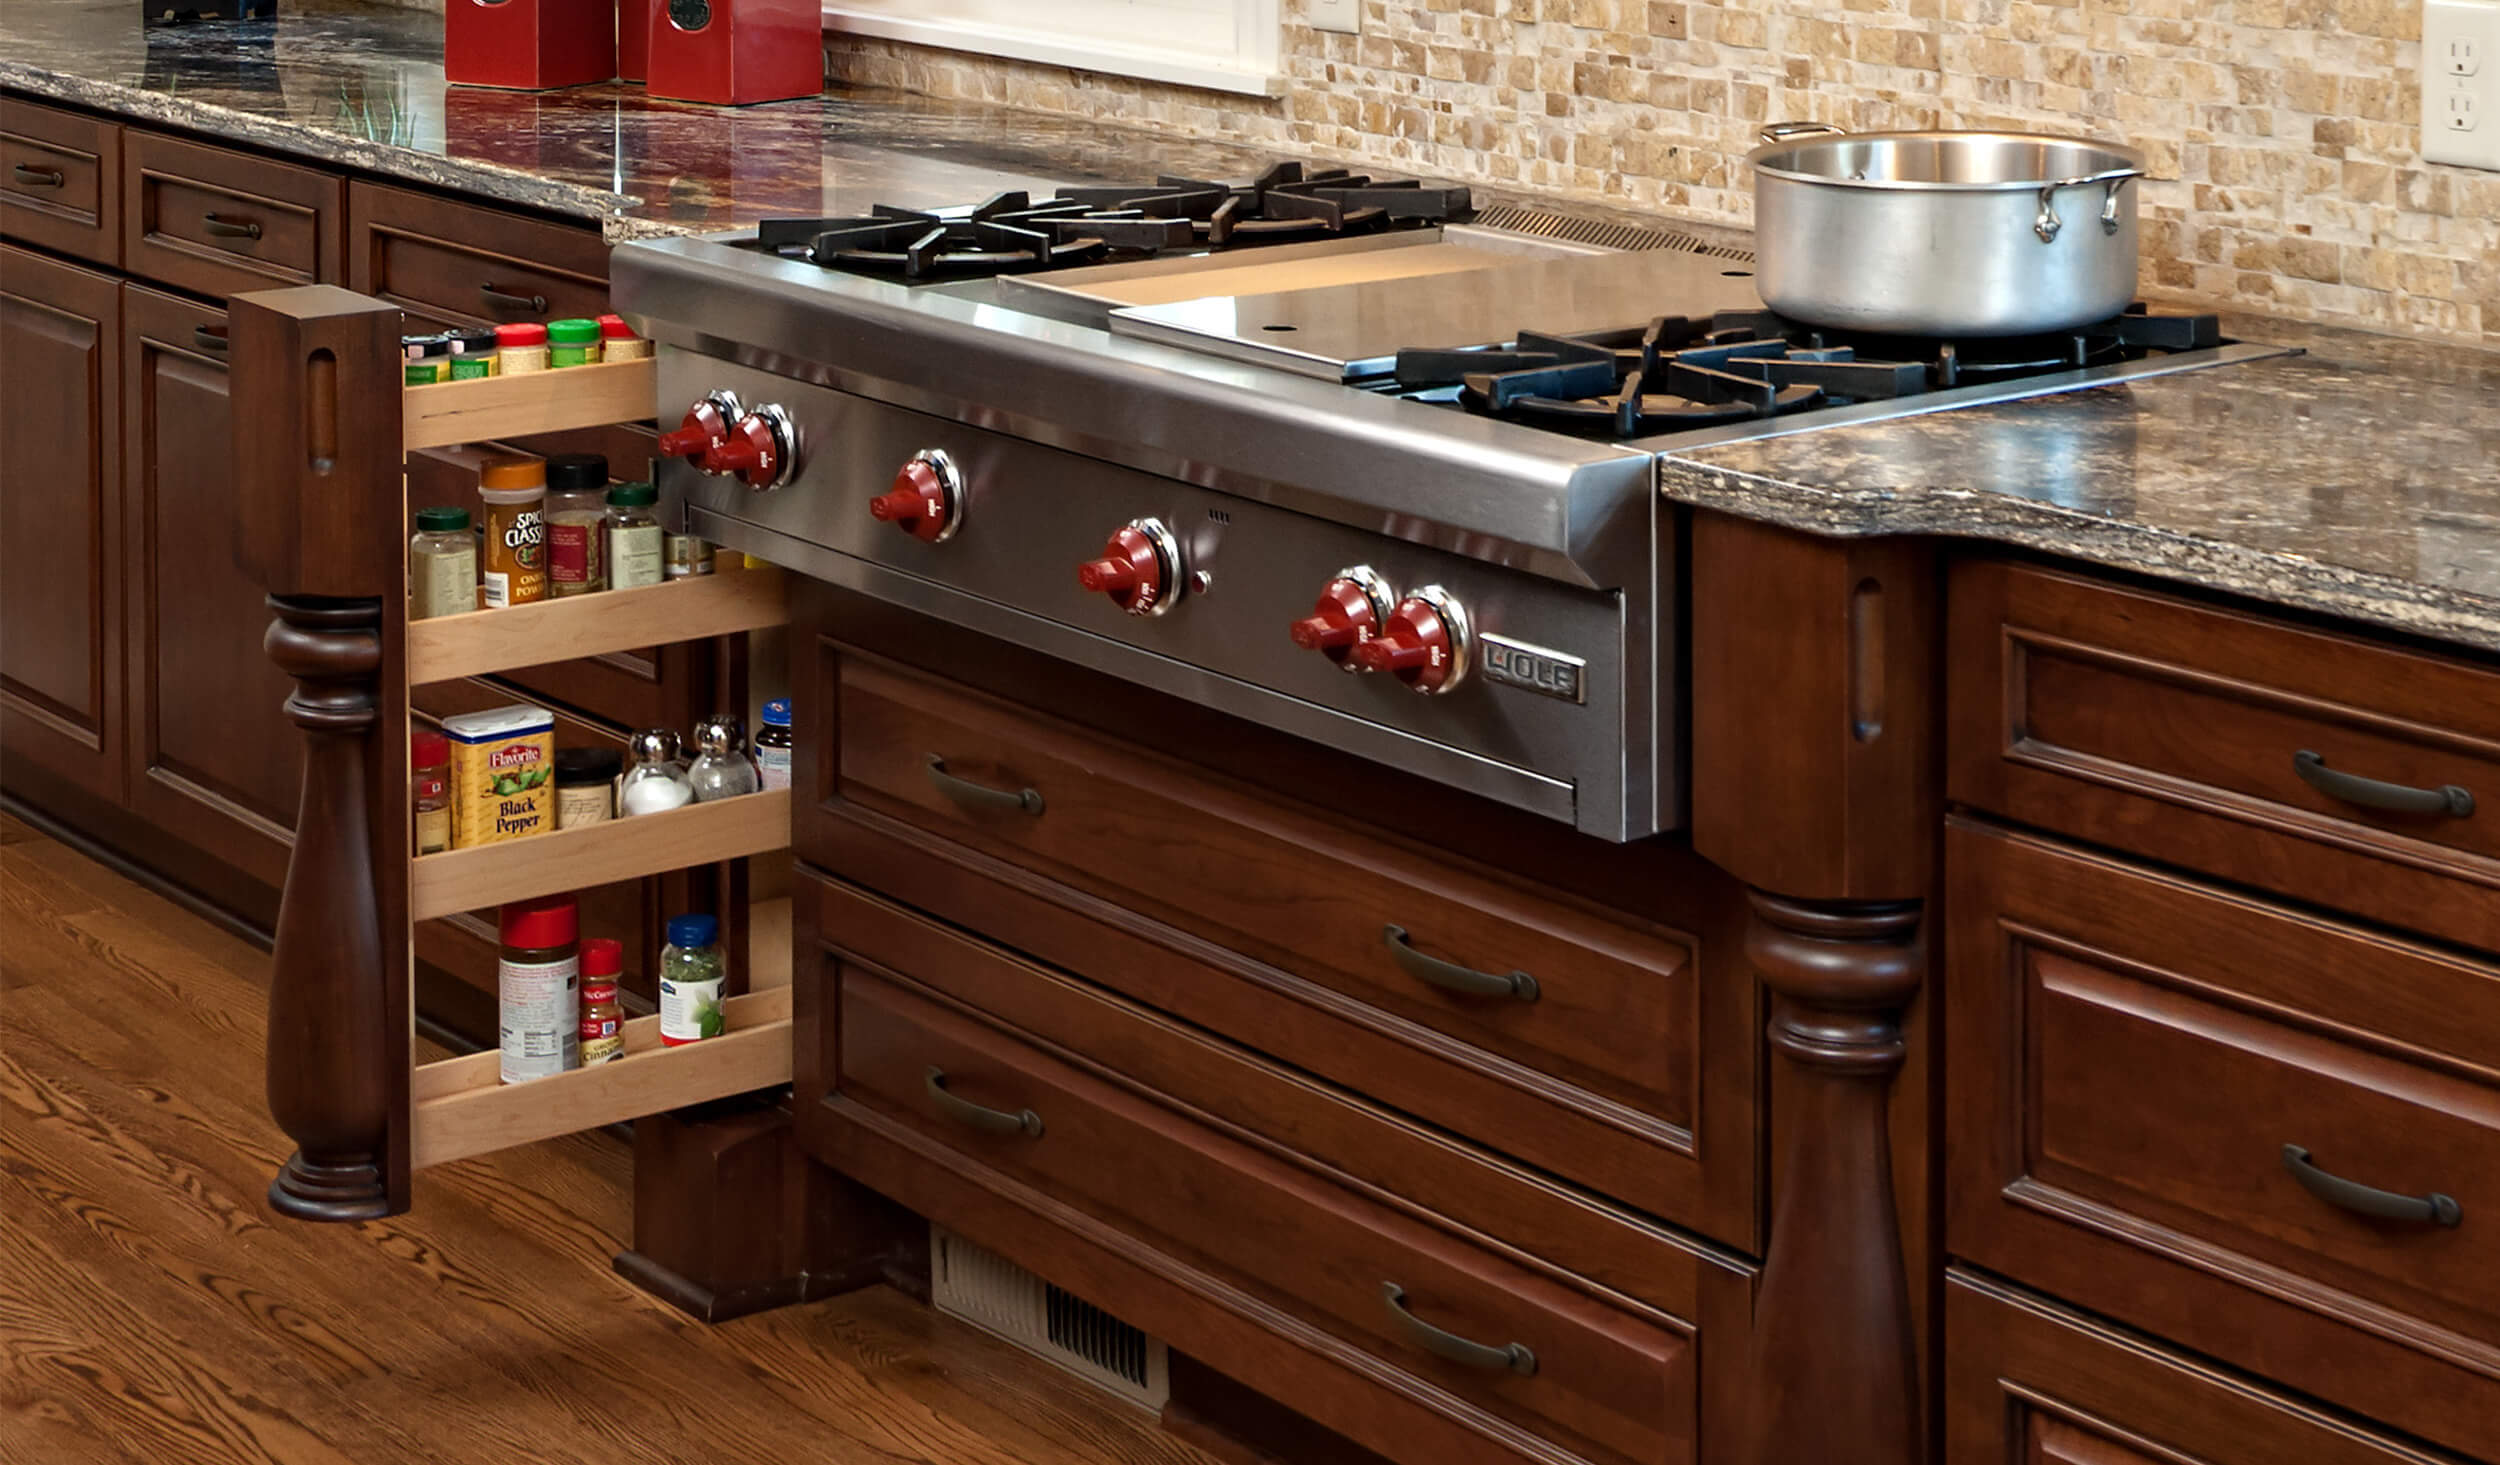 Dura Supreme's Pull-Out Spice Rack hidden behind a decorative turned post. Design by Kristen Peck of Knight Construction Design, Inc., Minnesota.